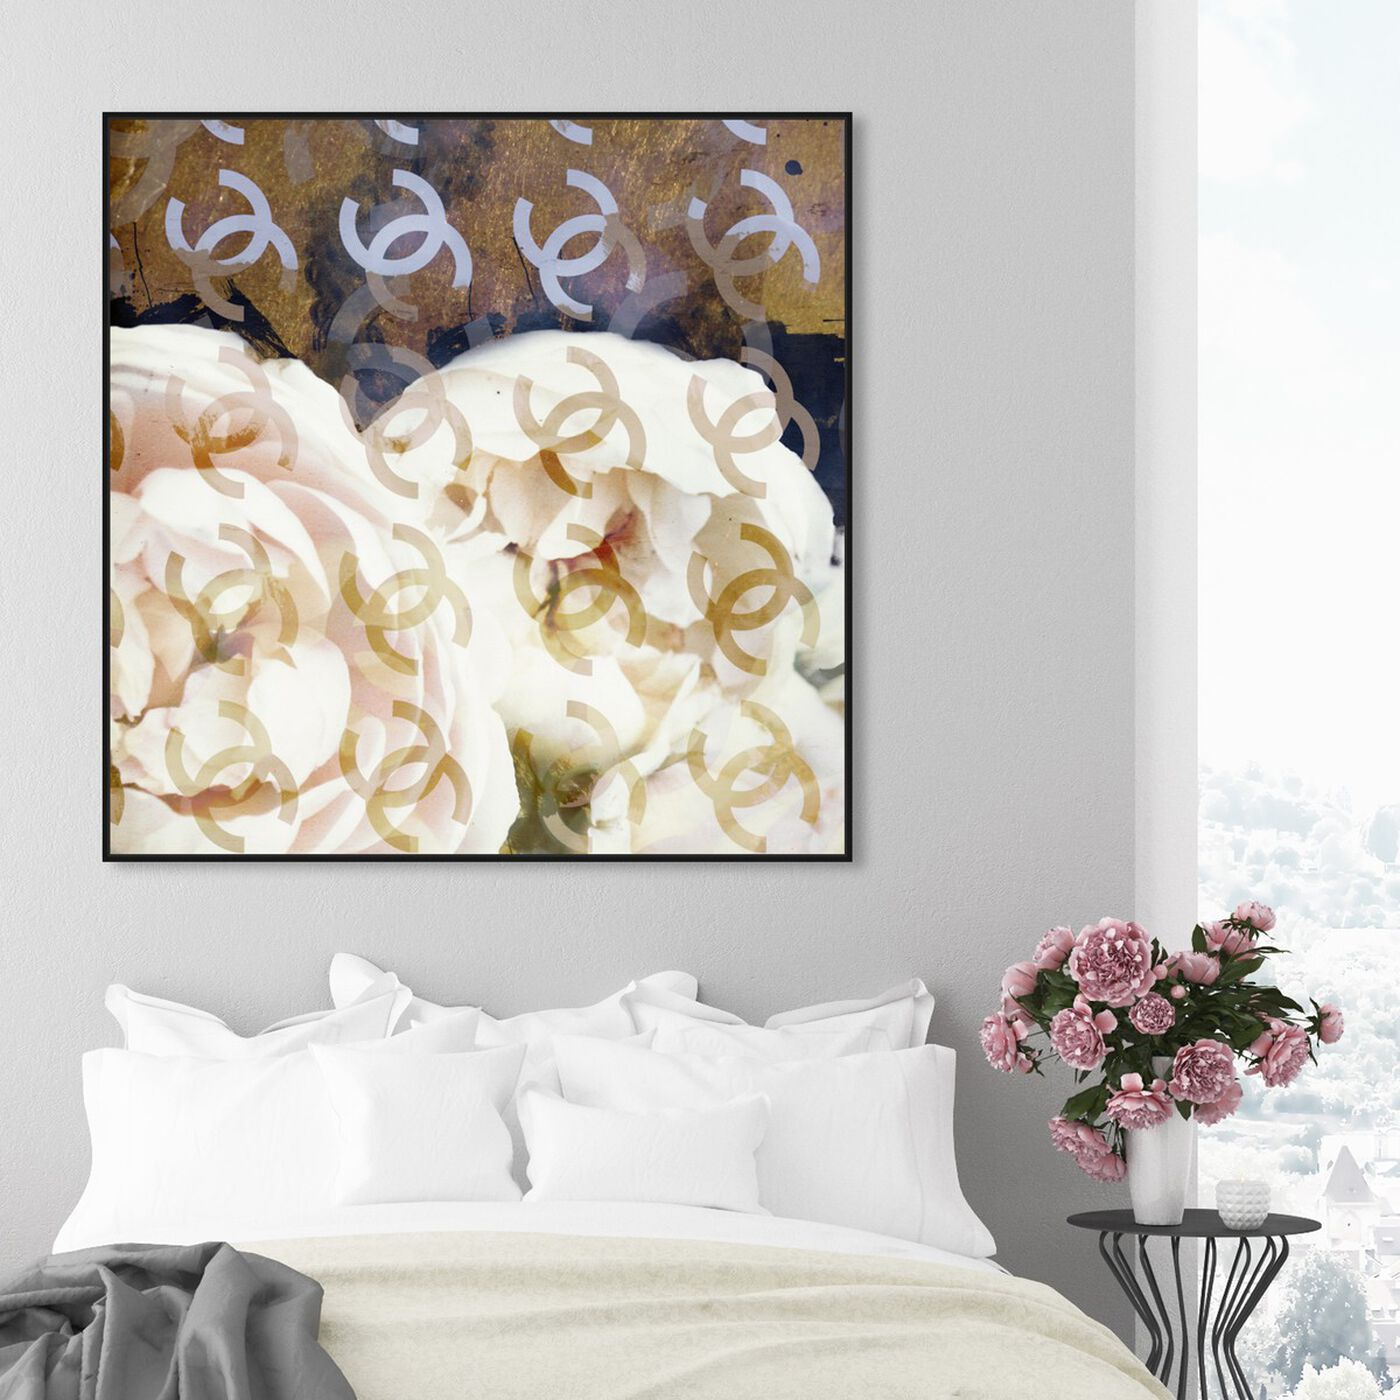 Hanging view of Fashions Flowers Vanilla featuring fashion and glam and fashion art.